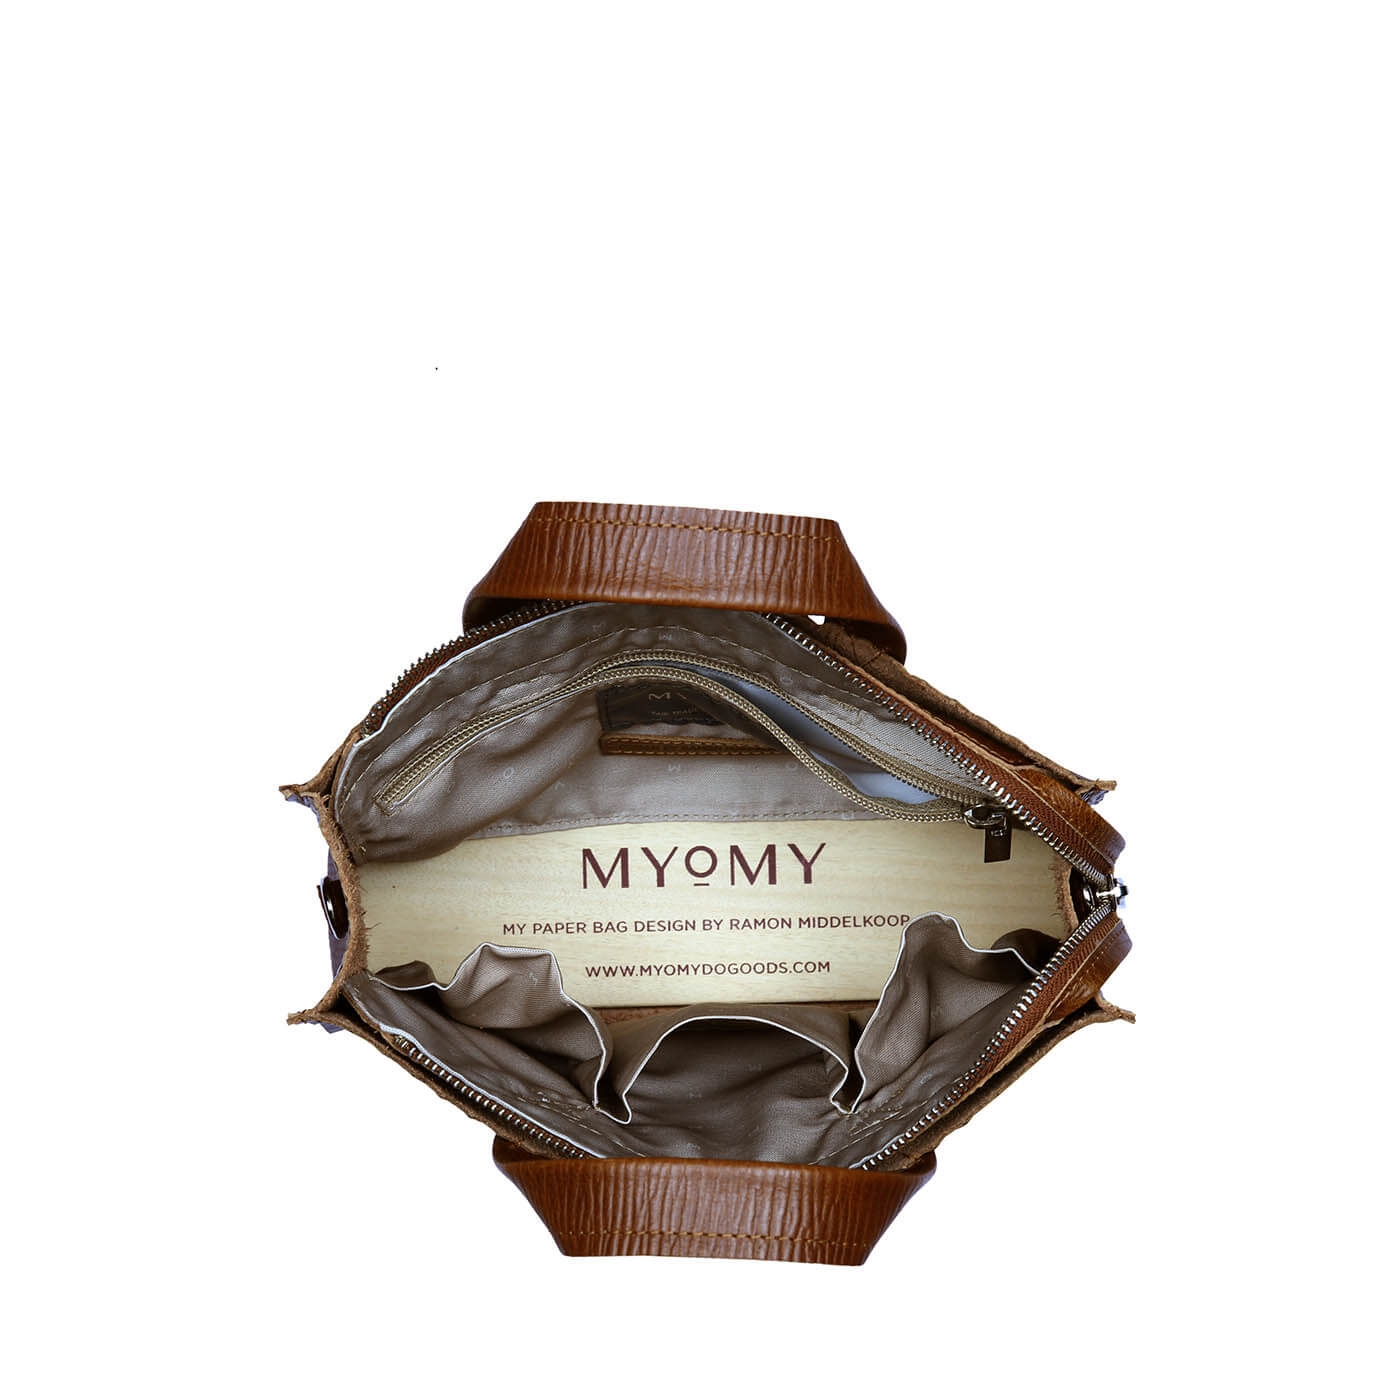 MYOMY - My Paper Bag Mini Handbag Cross-body - INGAR